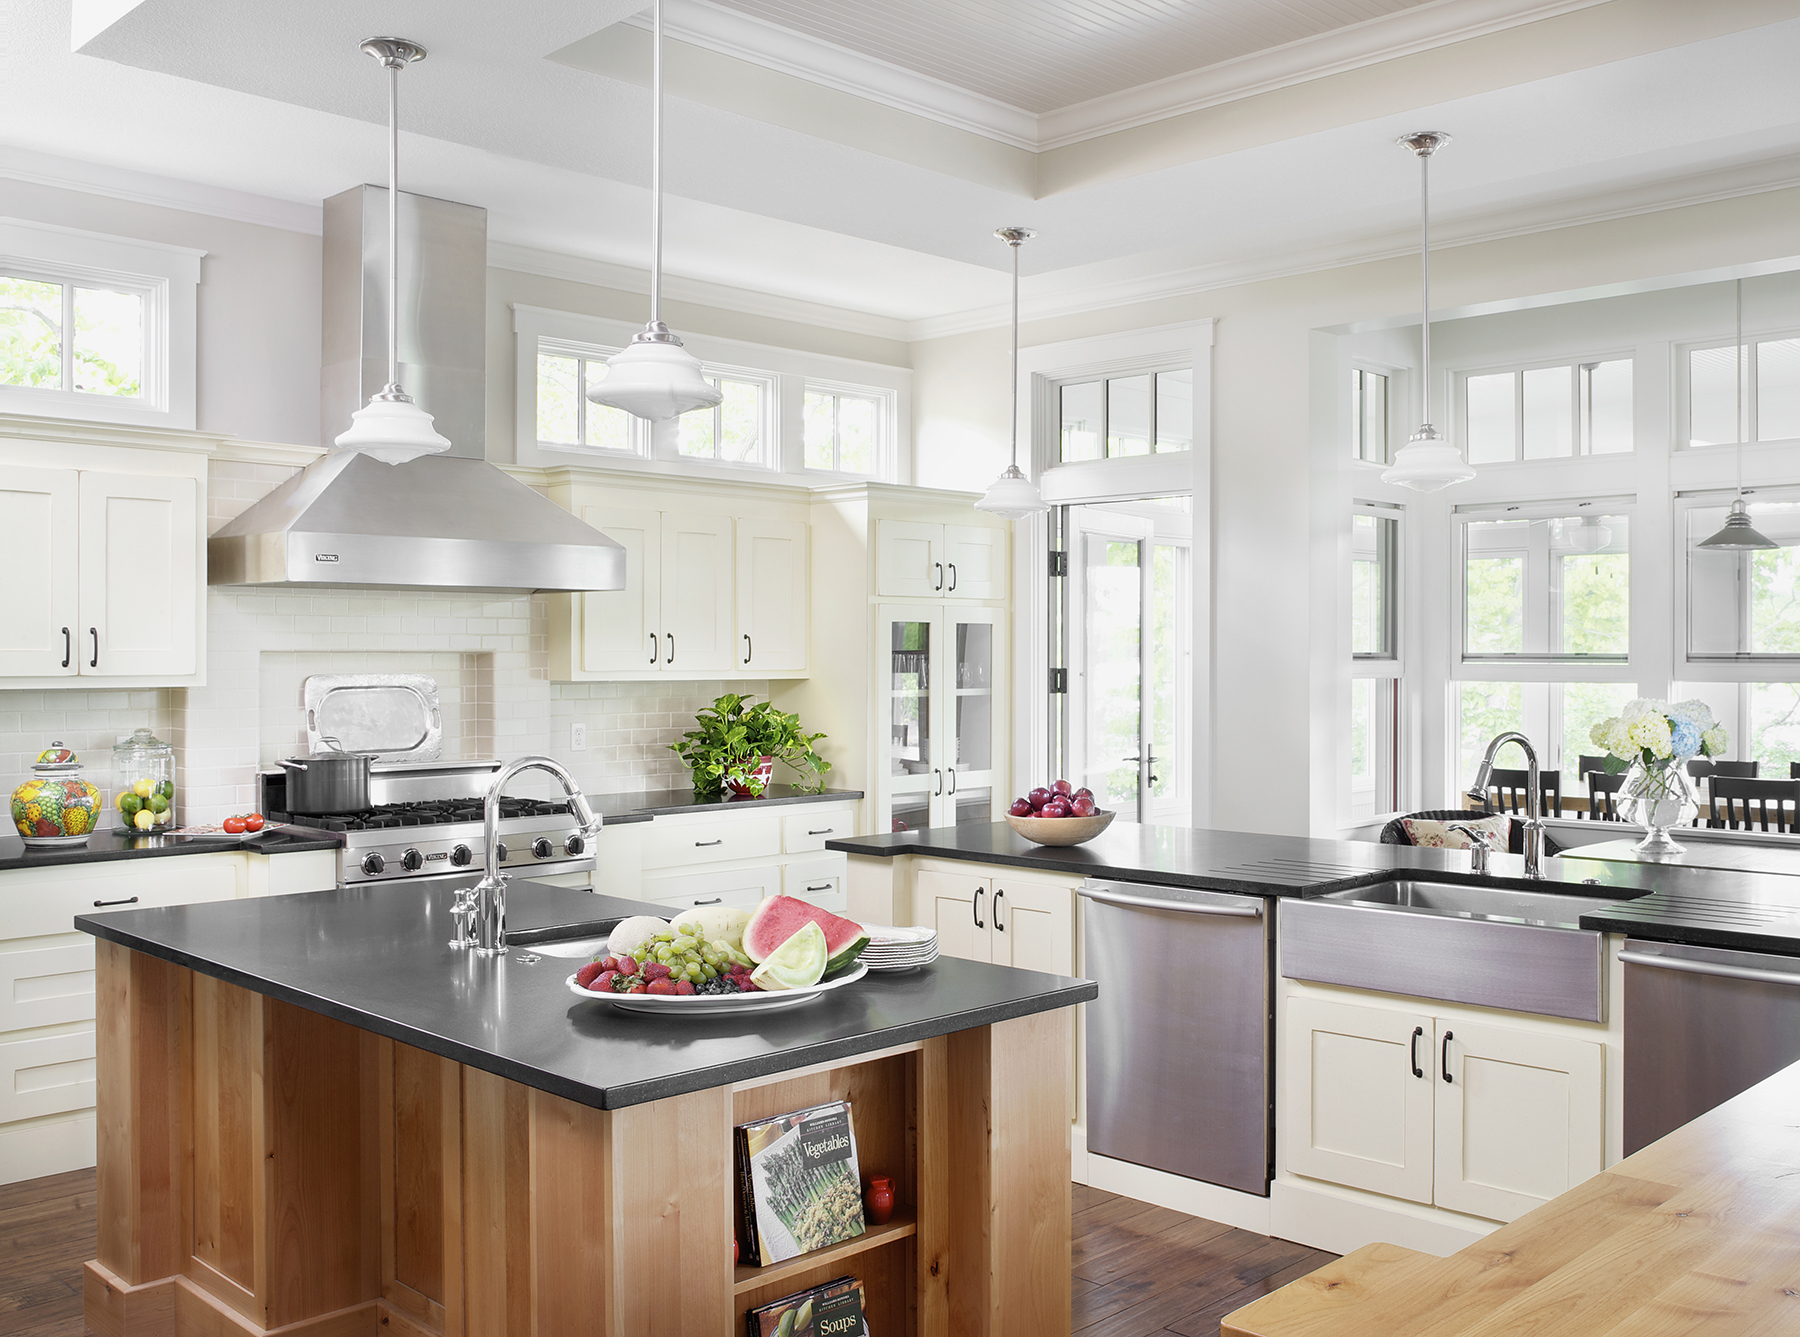 White kitchen with apron-front sink